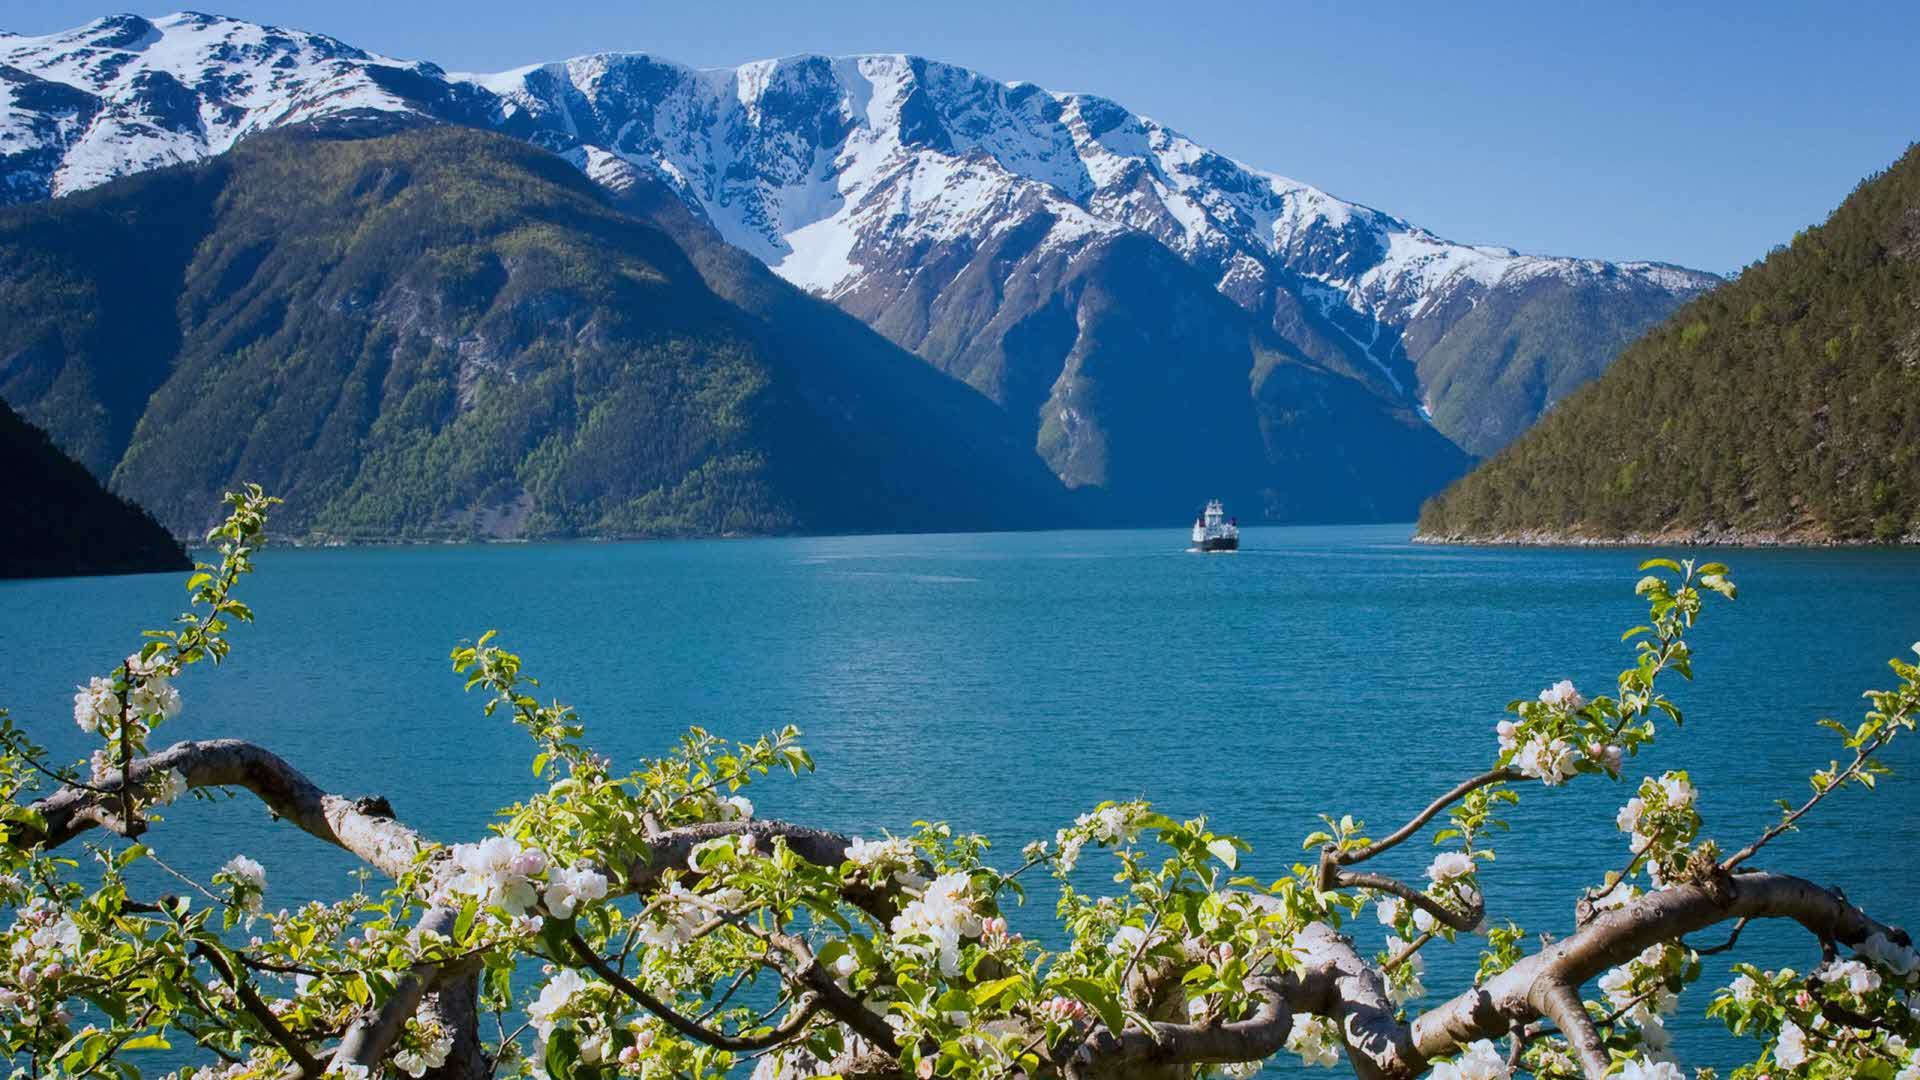 A ferry sails through the Sognefjord in spring, with snow-capped peaks and flowering fruit trees in the foreground.